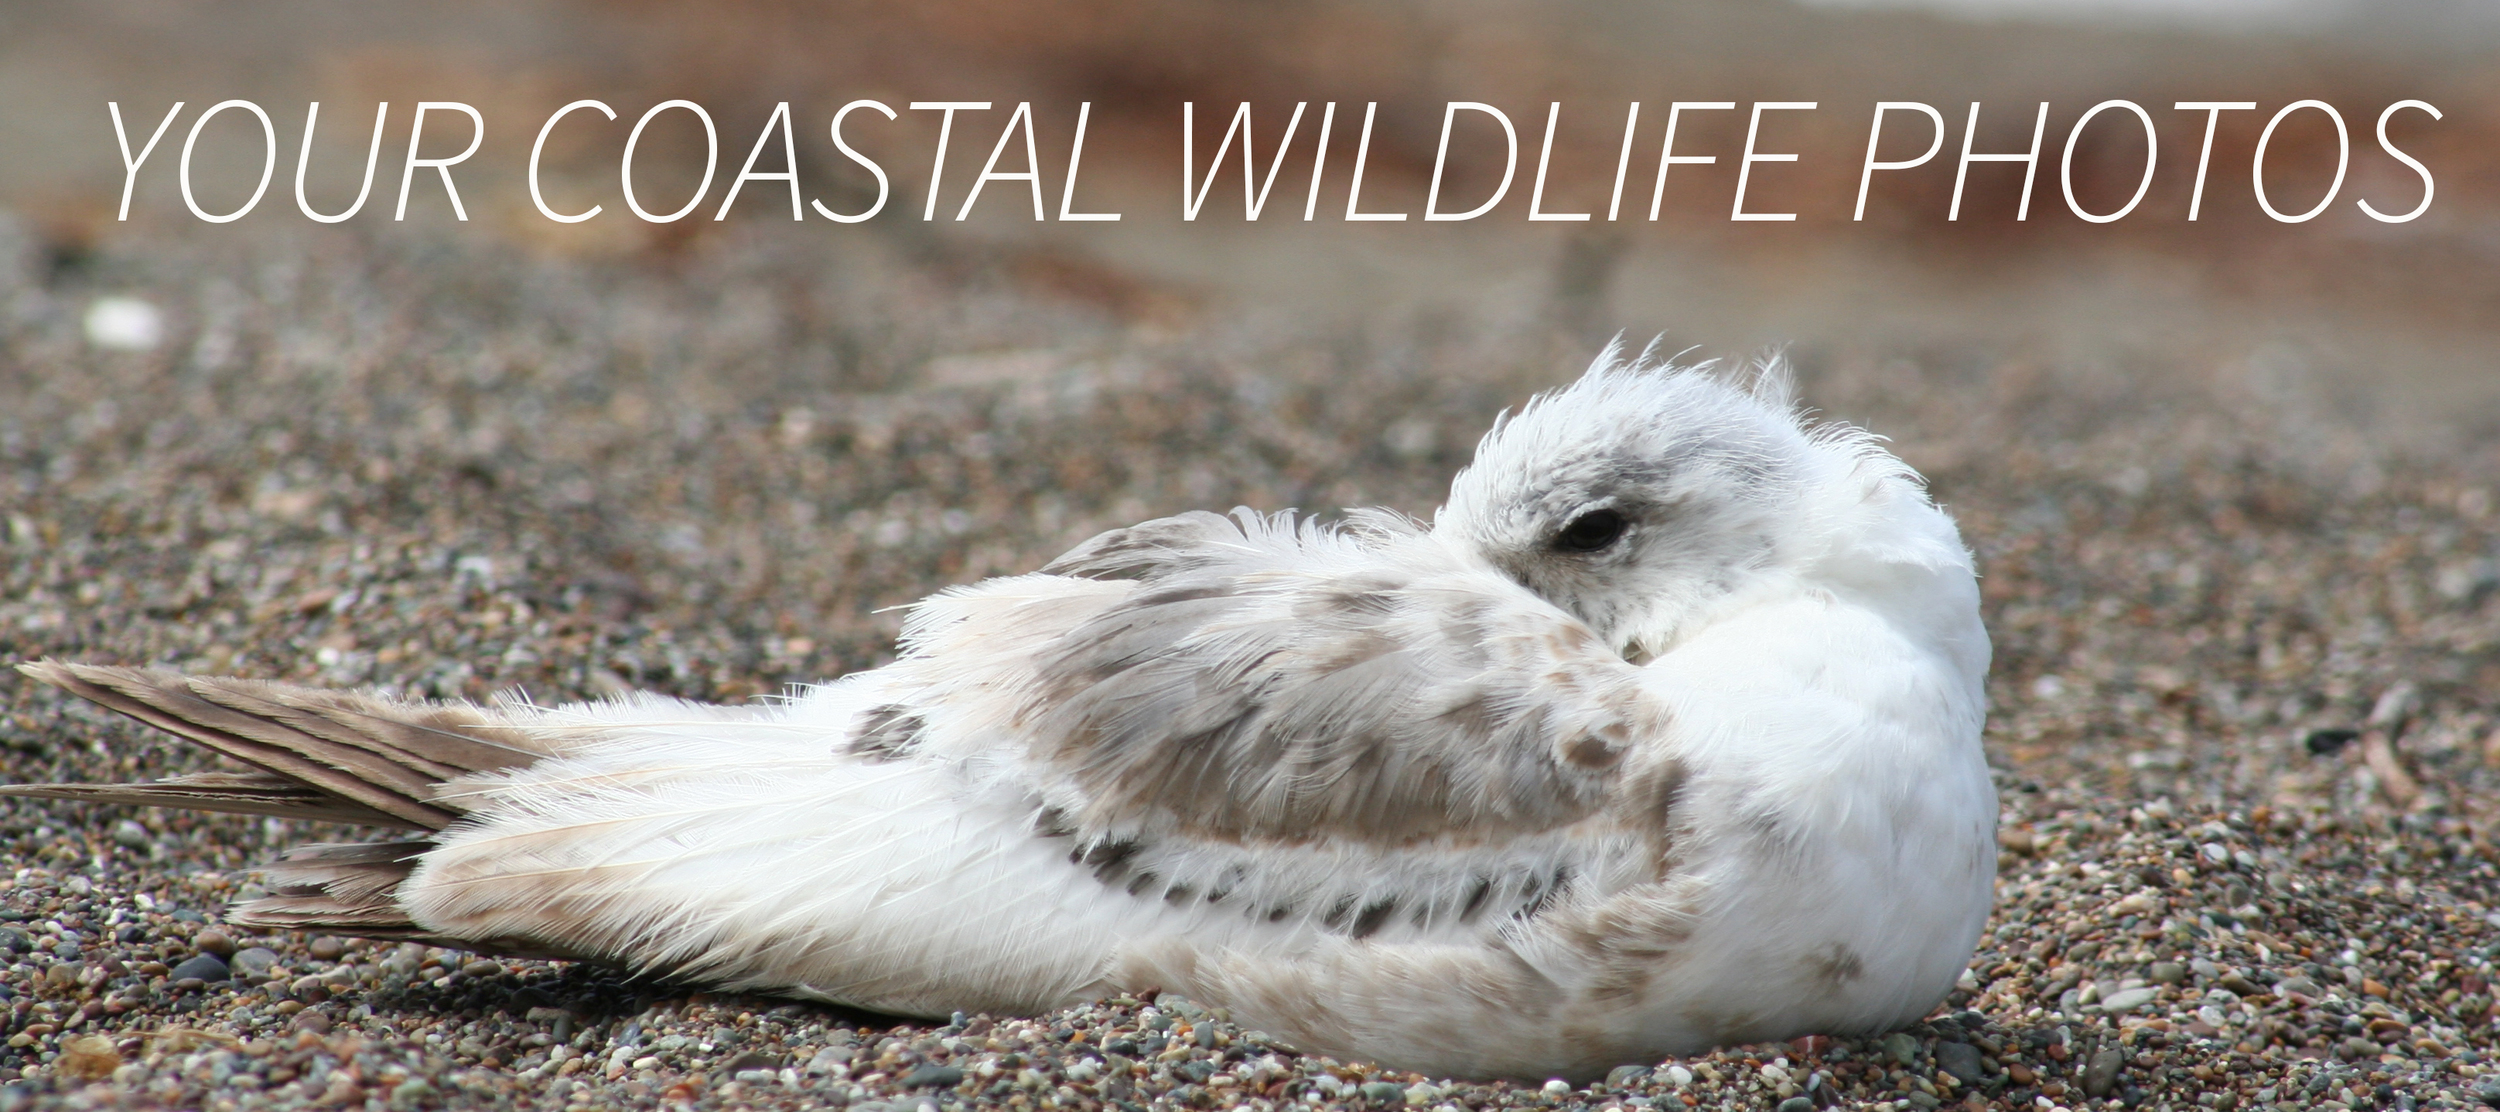 We invited  Evotis  readers to send us coastal wildlife photos. Send yours to onehealth@ucdavis.edufor consideration.